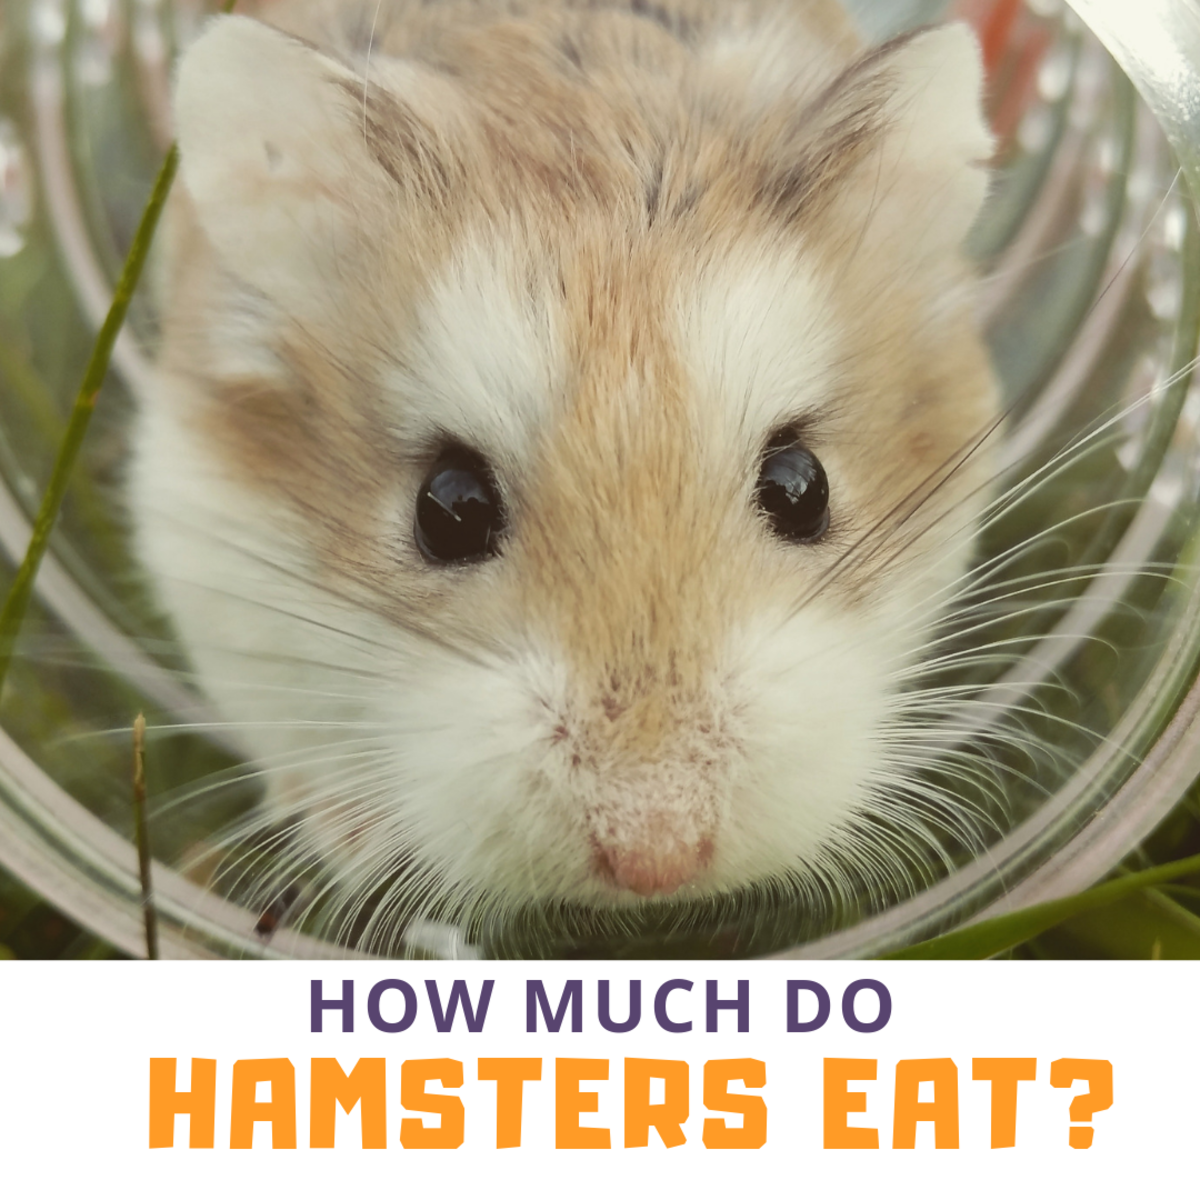 How Much Do Hamsters Eat?